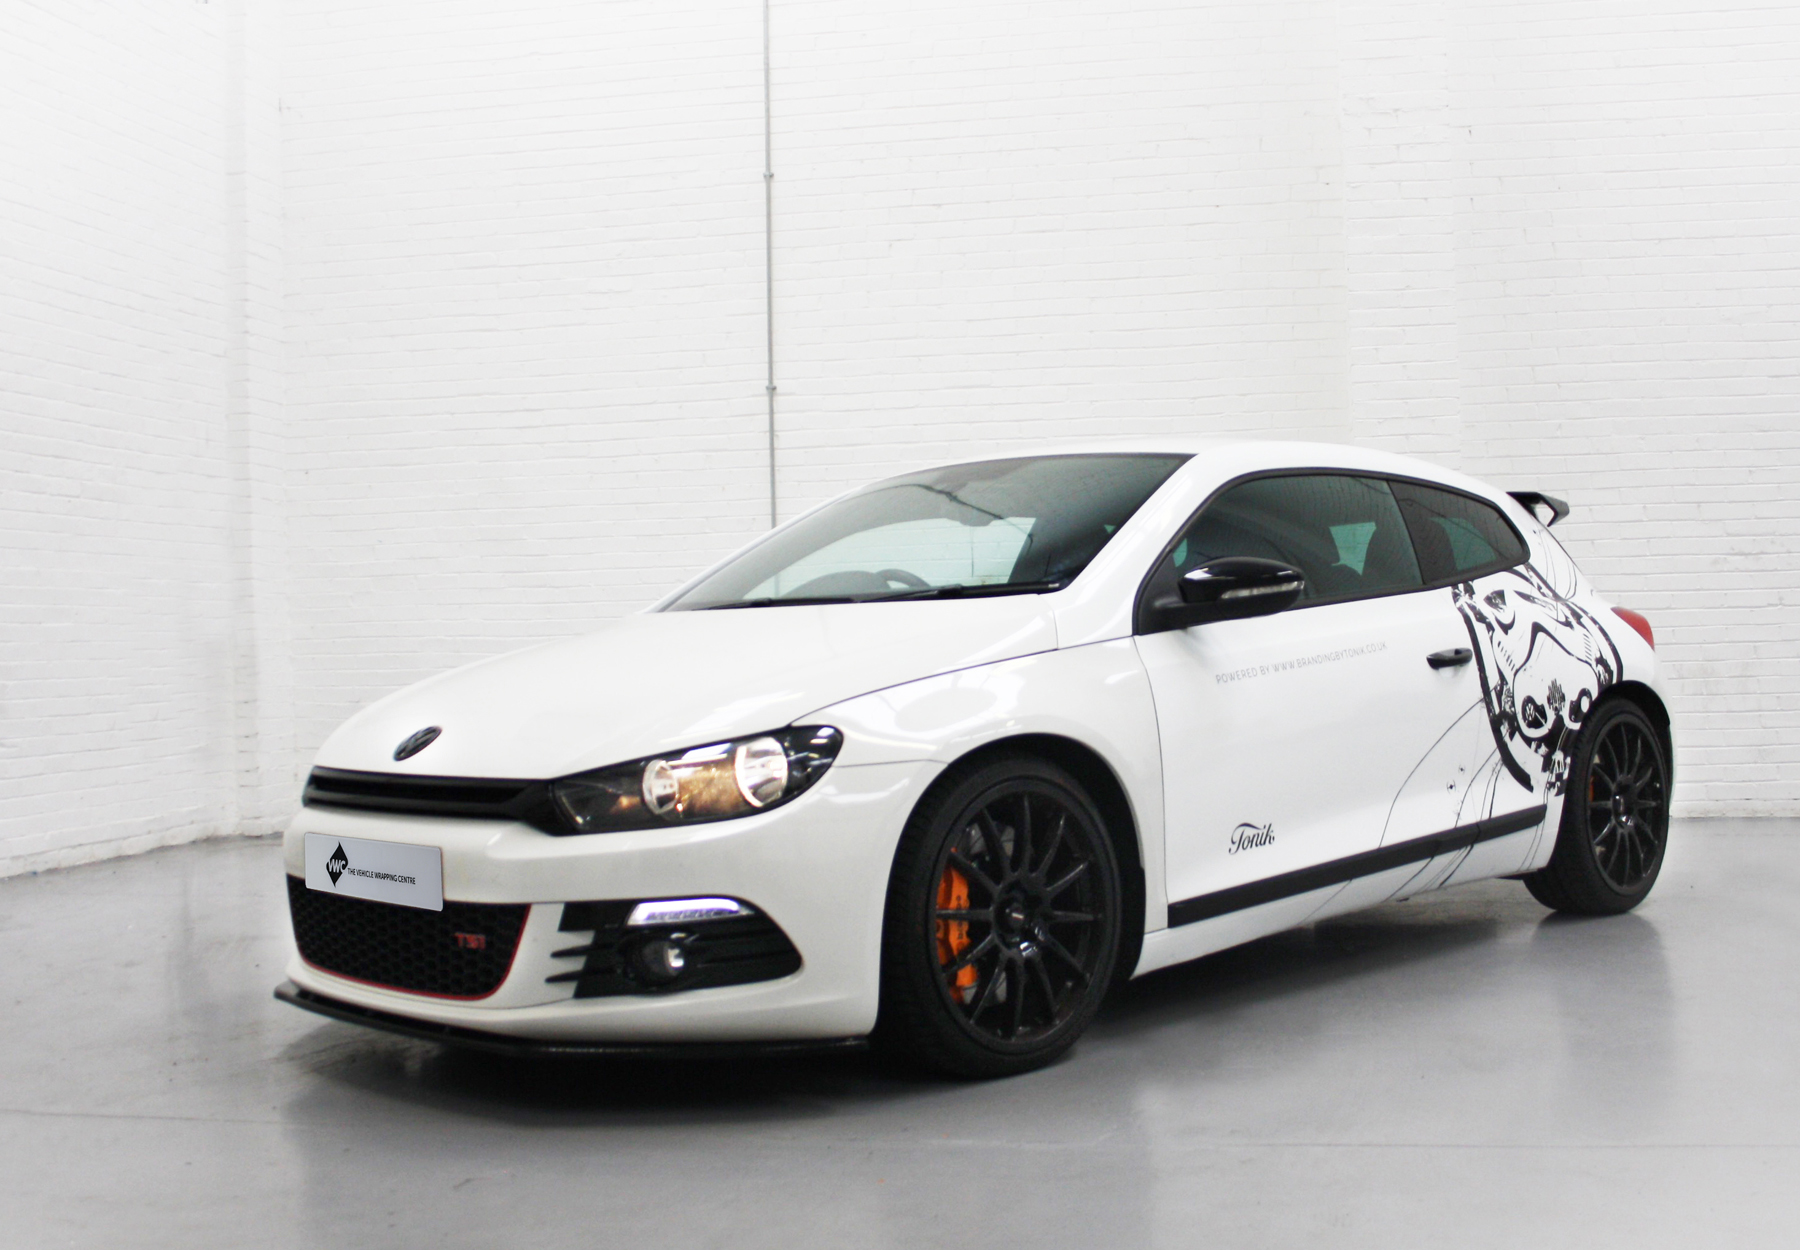 VW Scirocco Personal Vehicle Wrap Project